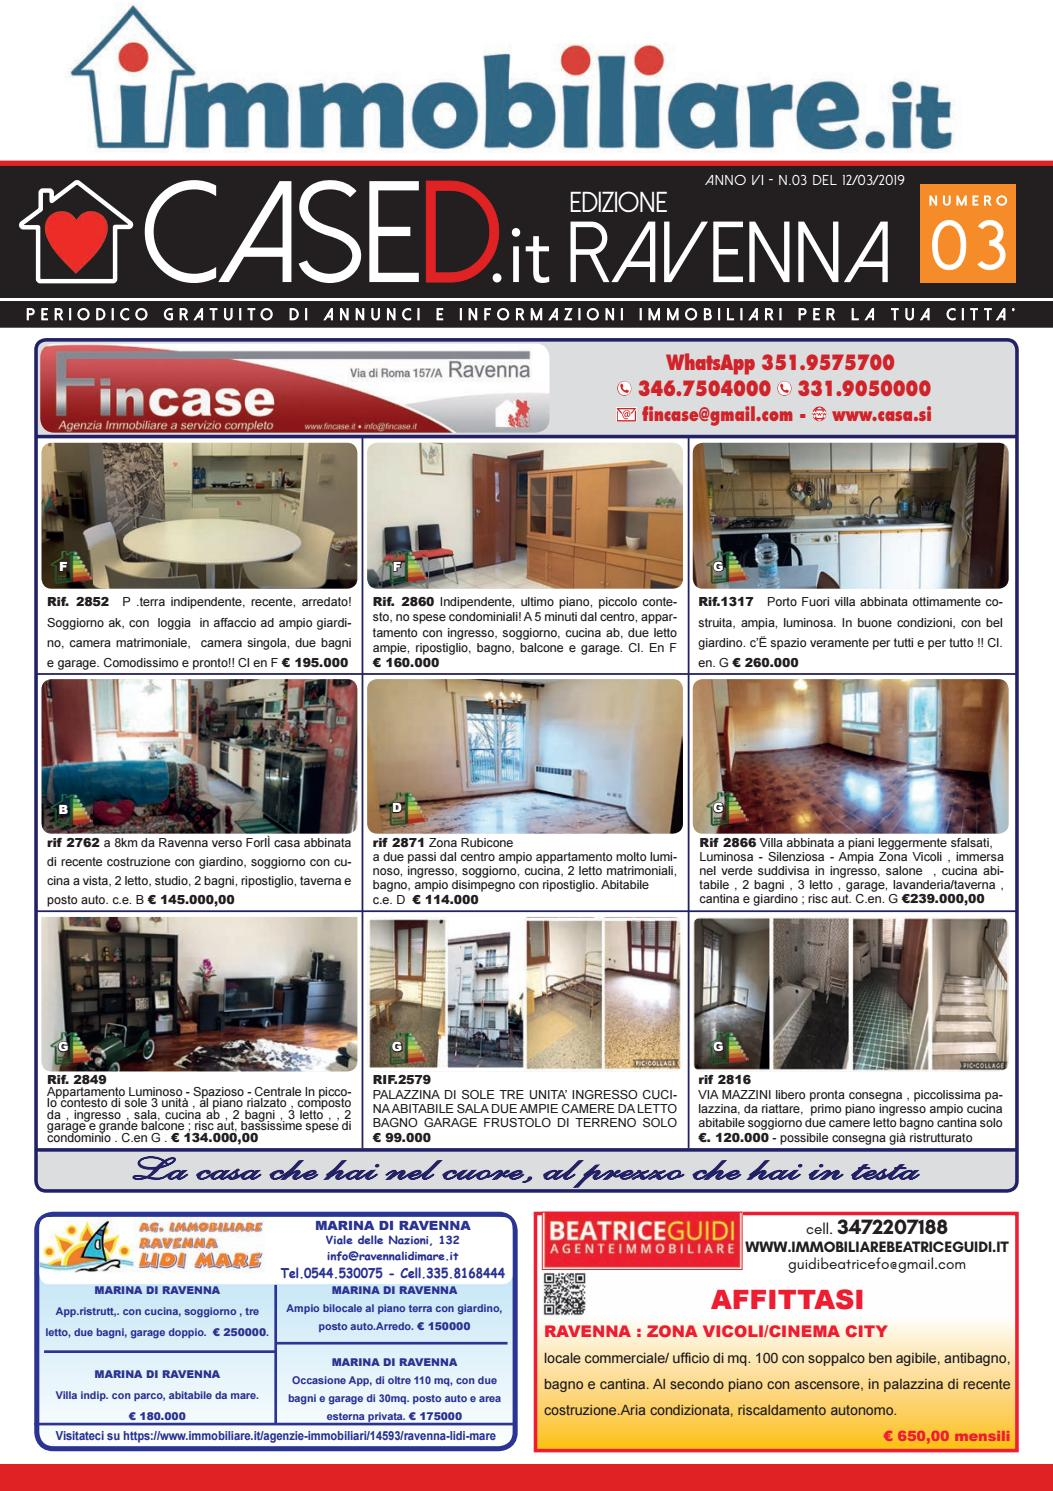 Bagno Quinto 176 Cervia Cased Ravenna N 03 Del 12 03 2019 By Press One Srl Issuu